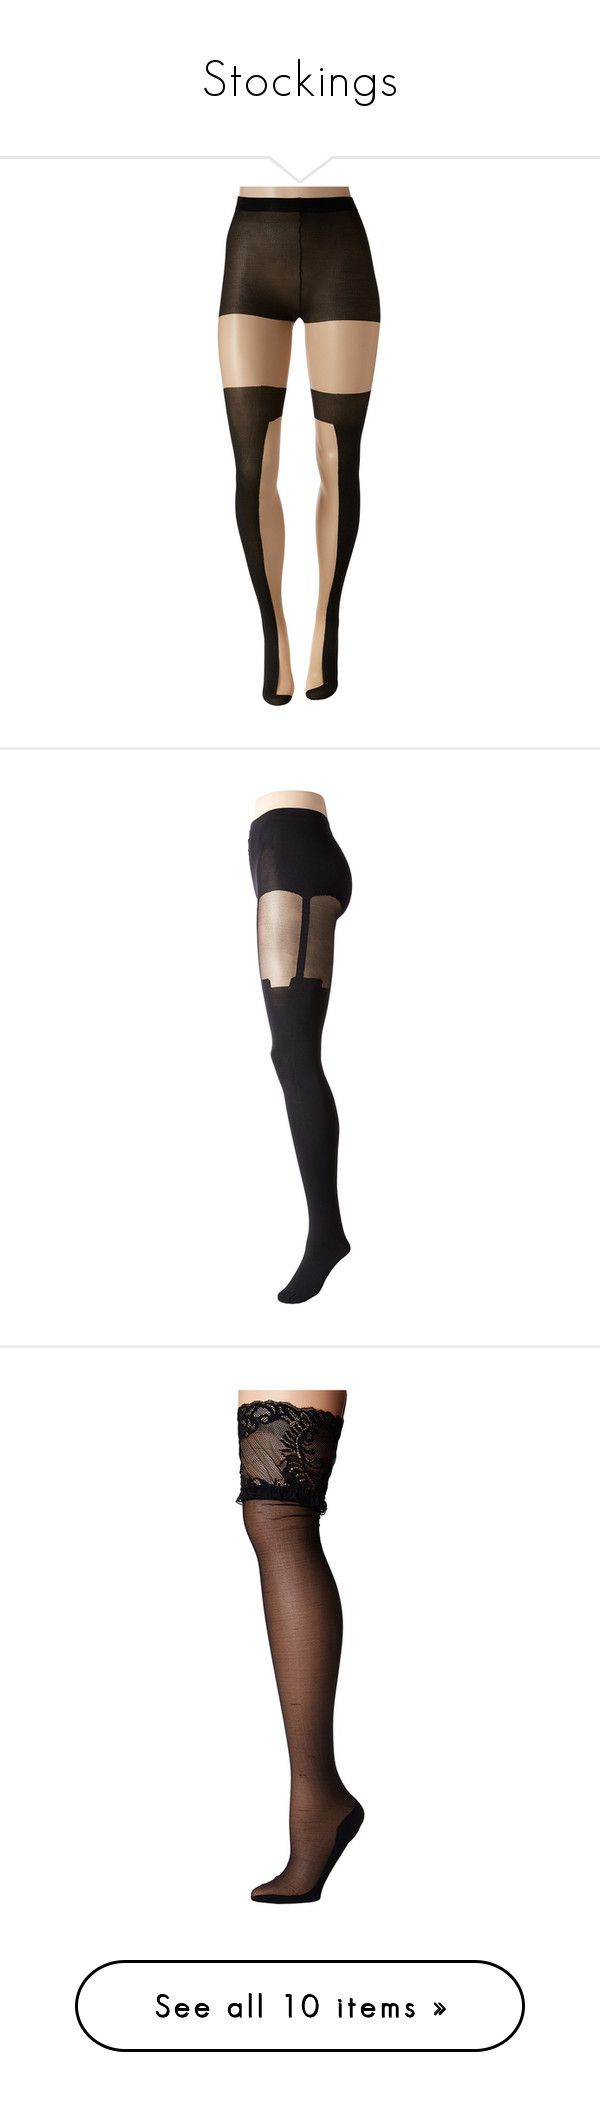 """""""Stockings"""" by forevercharmed ❤ liked on Polyvore featuring intimates, hosiery, tights, neutral, thigh high stockings, thigh high nylon stockings, nylon stockings, opaque thigh high stockings, nude pantyhose and sheer tights"""